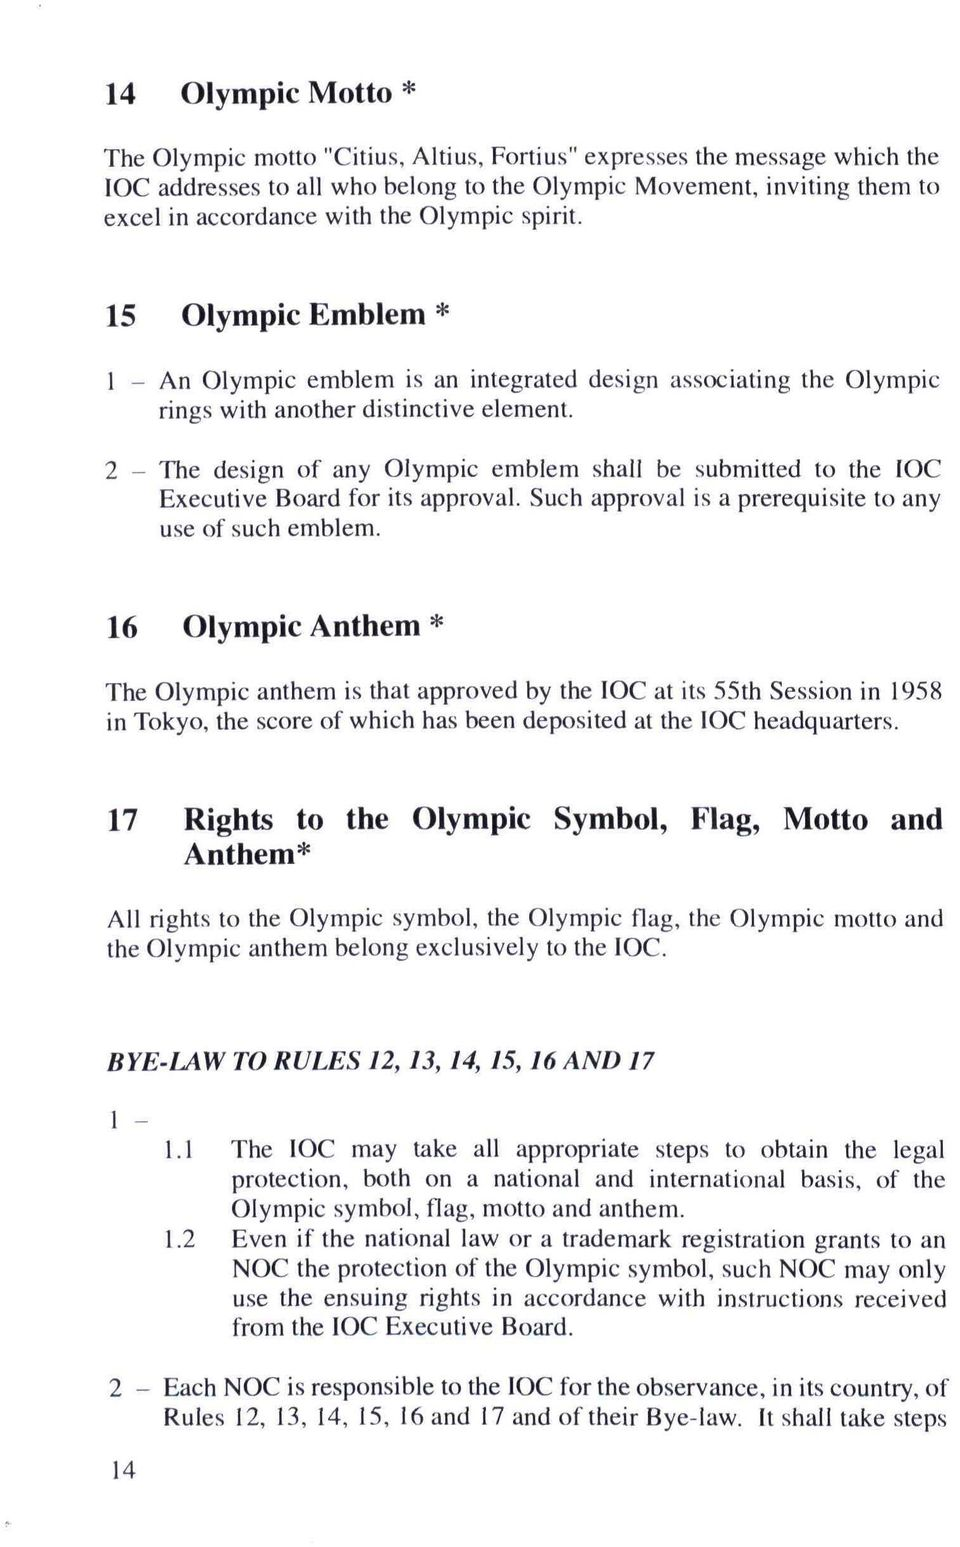 2 - The design of any Olympic emblem shall be submitted to the IOC Executive Board for its approval. Such approval is a prerequisite to any use of such emblem.